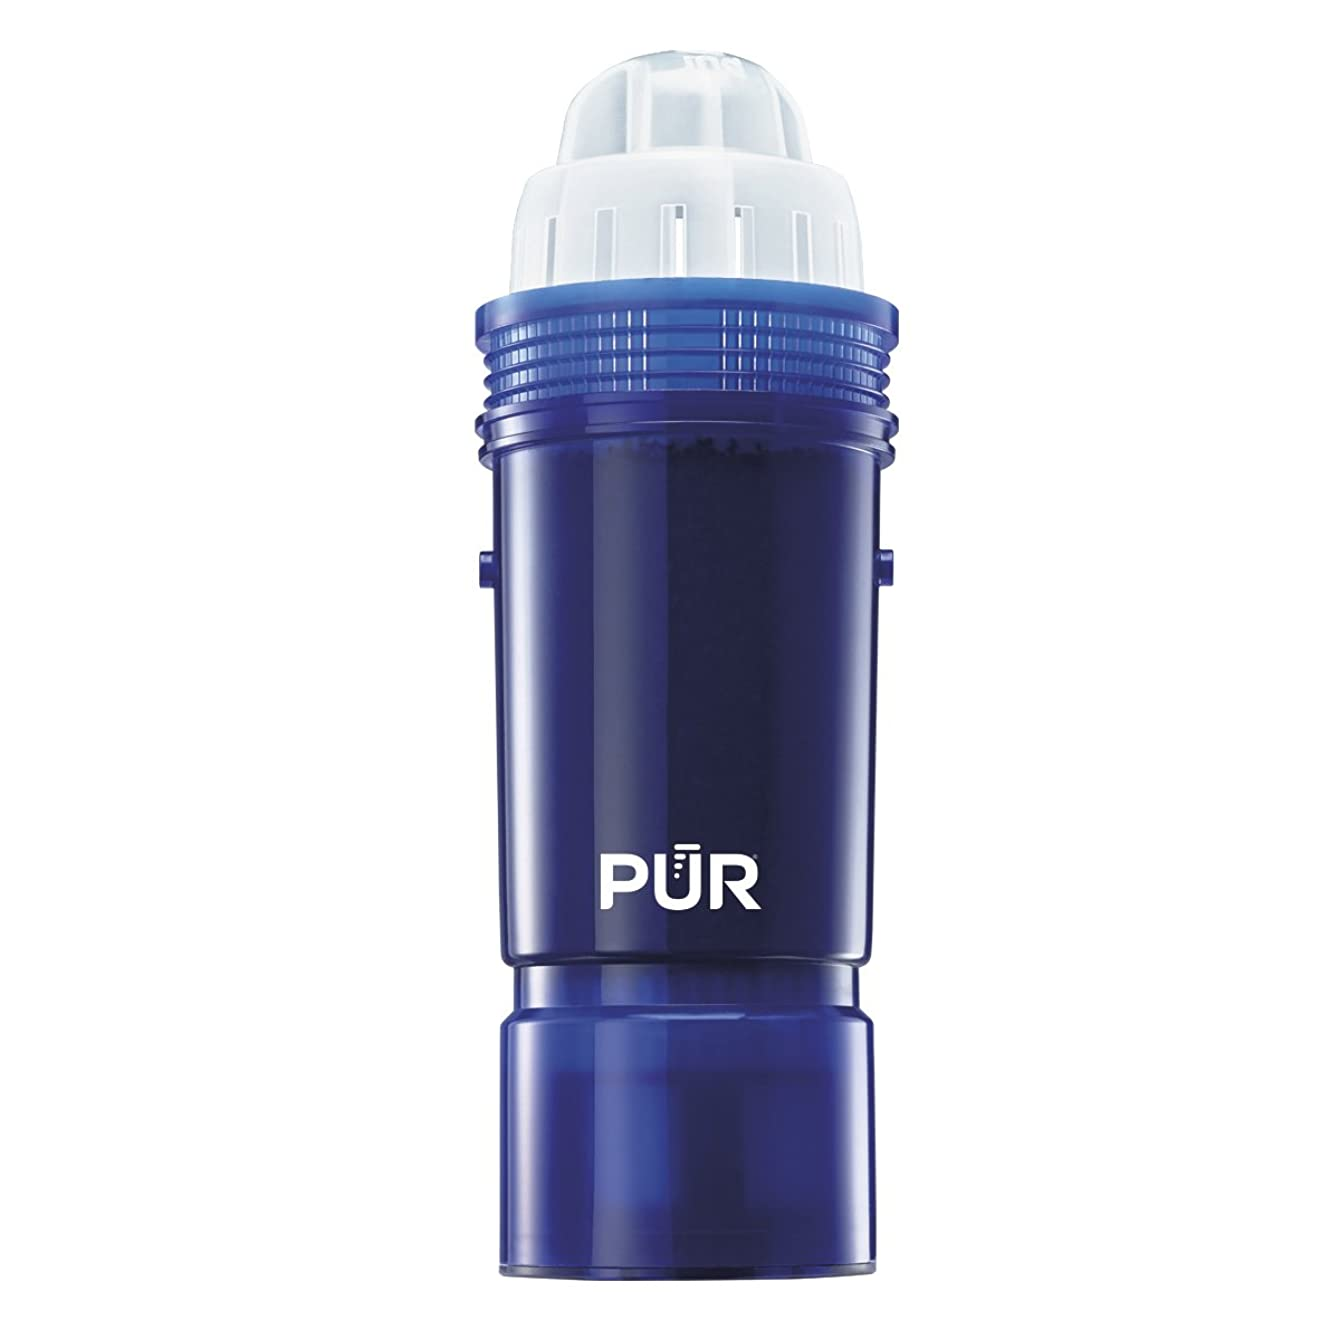 PUR Lead Reduction Pitcher Replacement Water Filter (3 Pack)